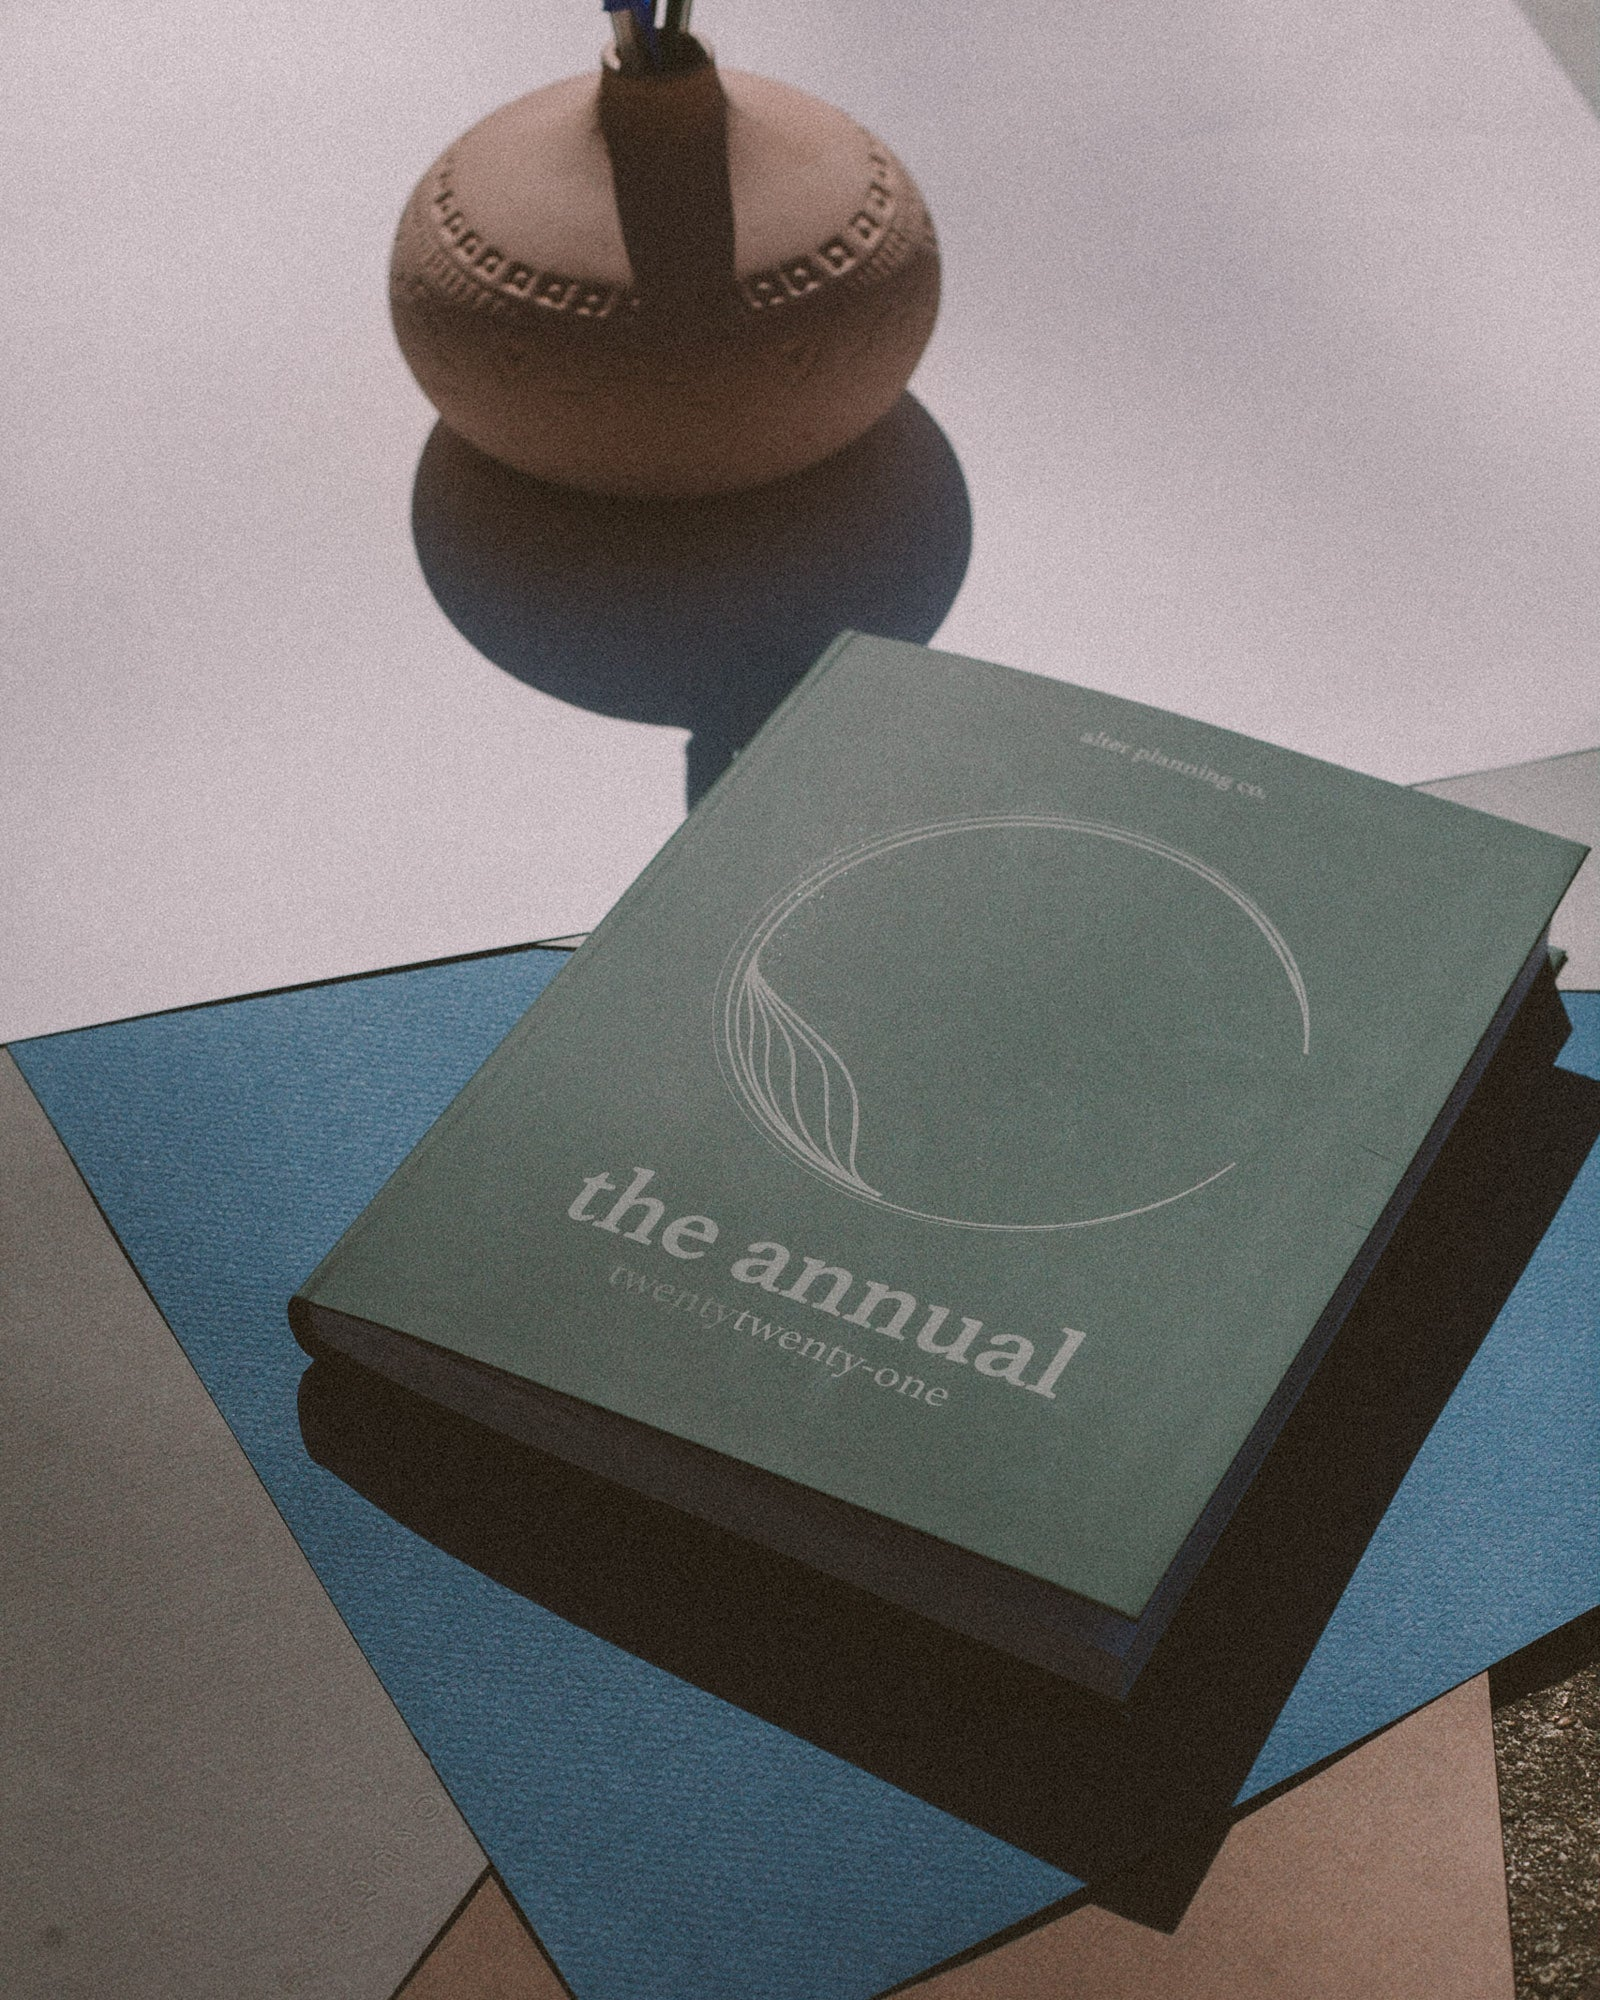 "image of alter planning co. product ""The Annual"" in green, on a blue and white background."